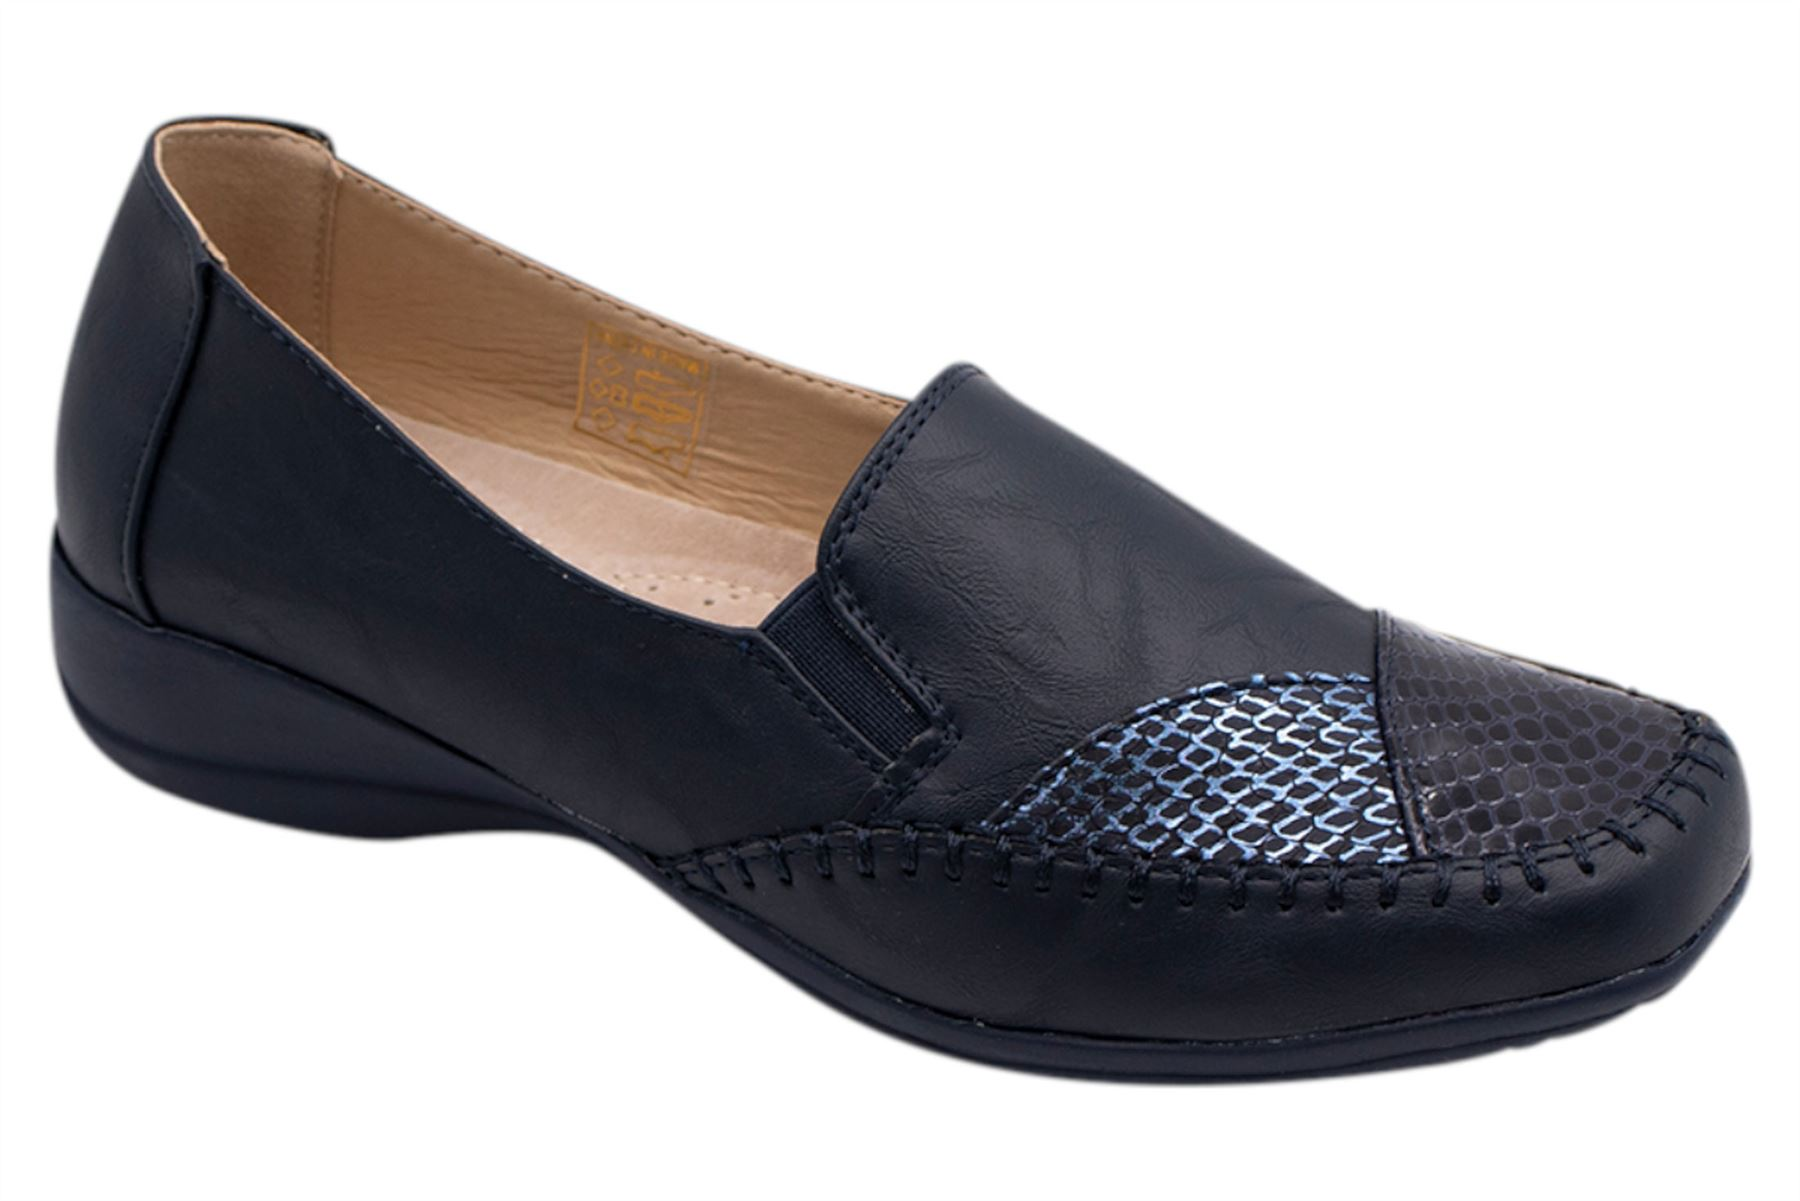 Womens-Flat-Shoes-Ladies-Pumps-Office-Work-Casual-Slip-On-Loafer-Size thumbnail 14